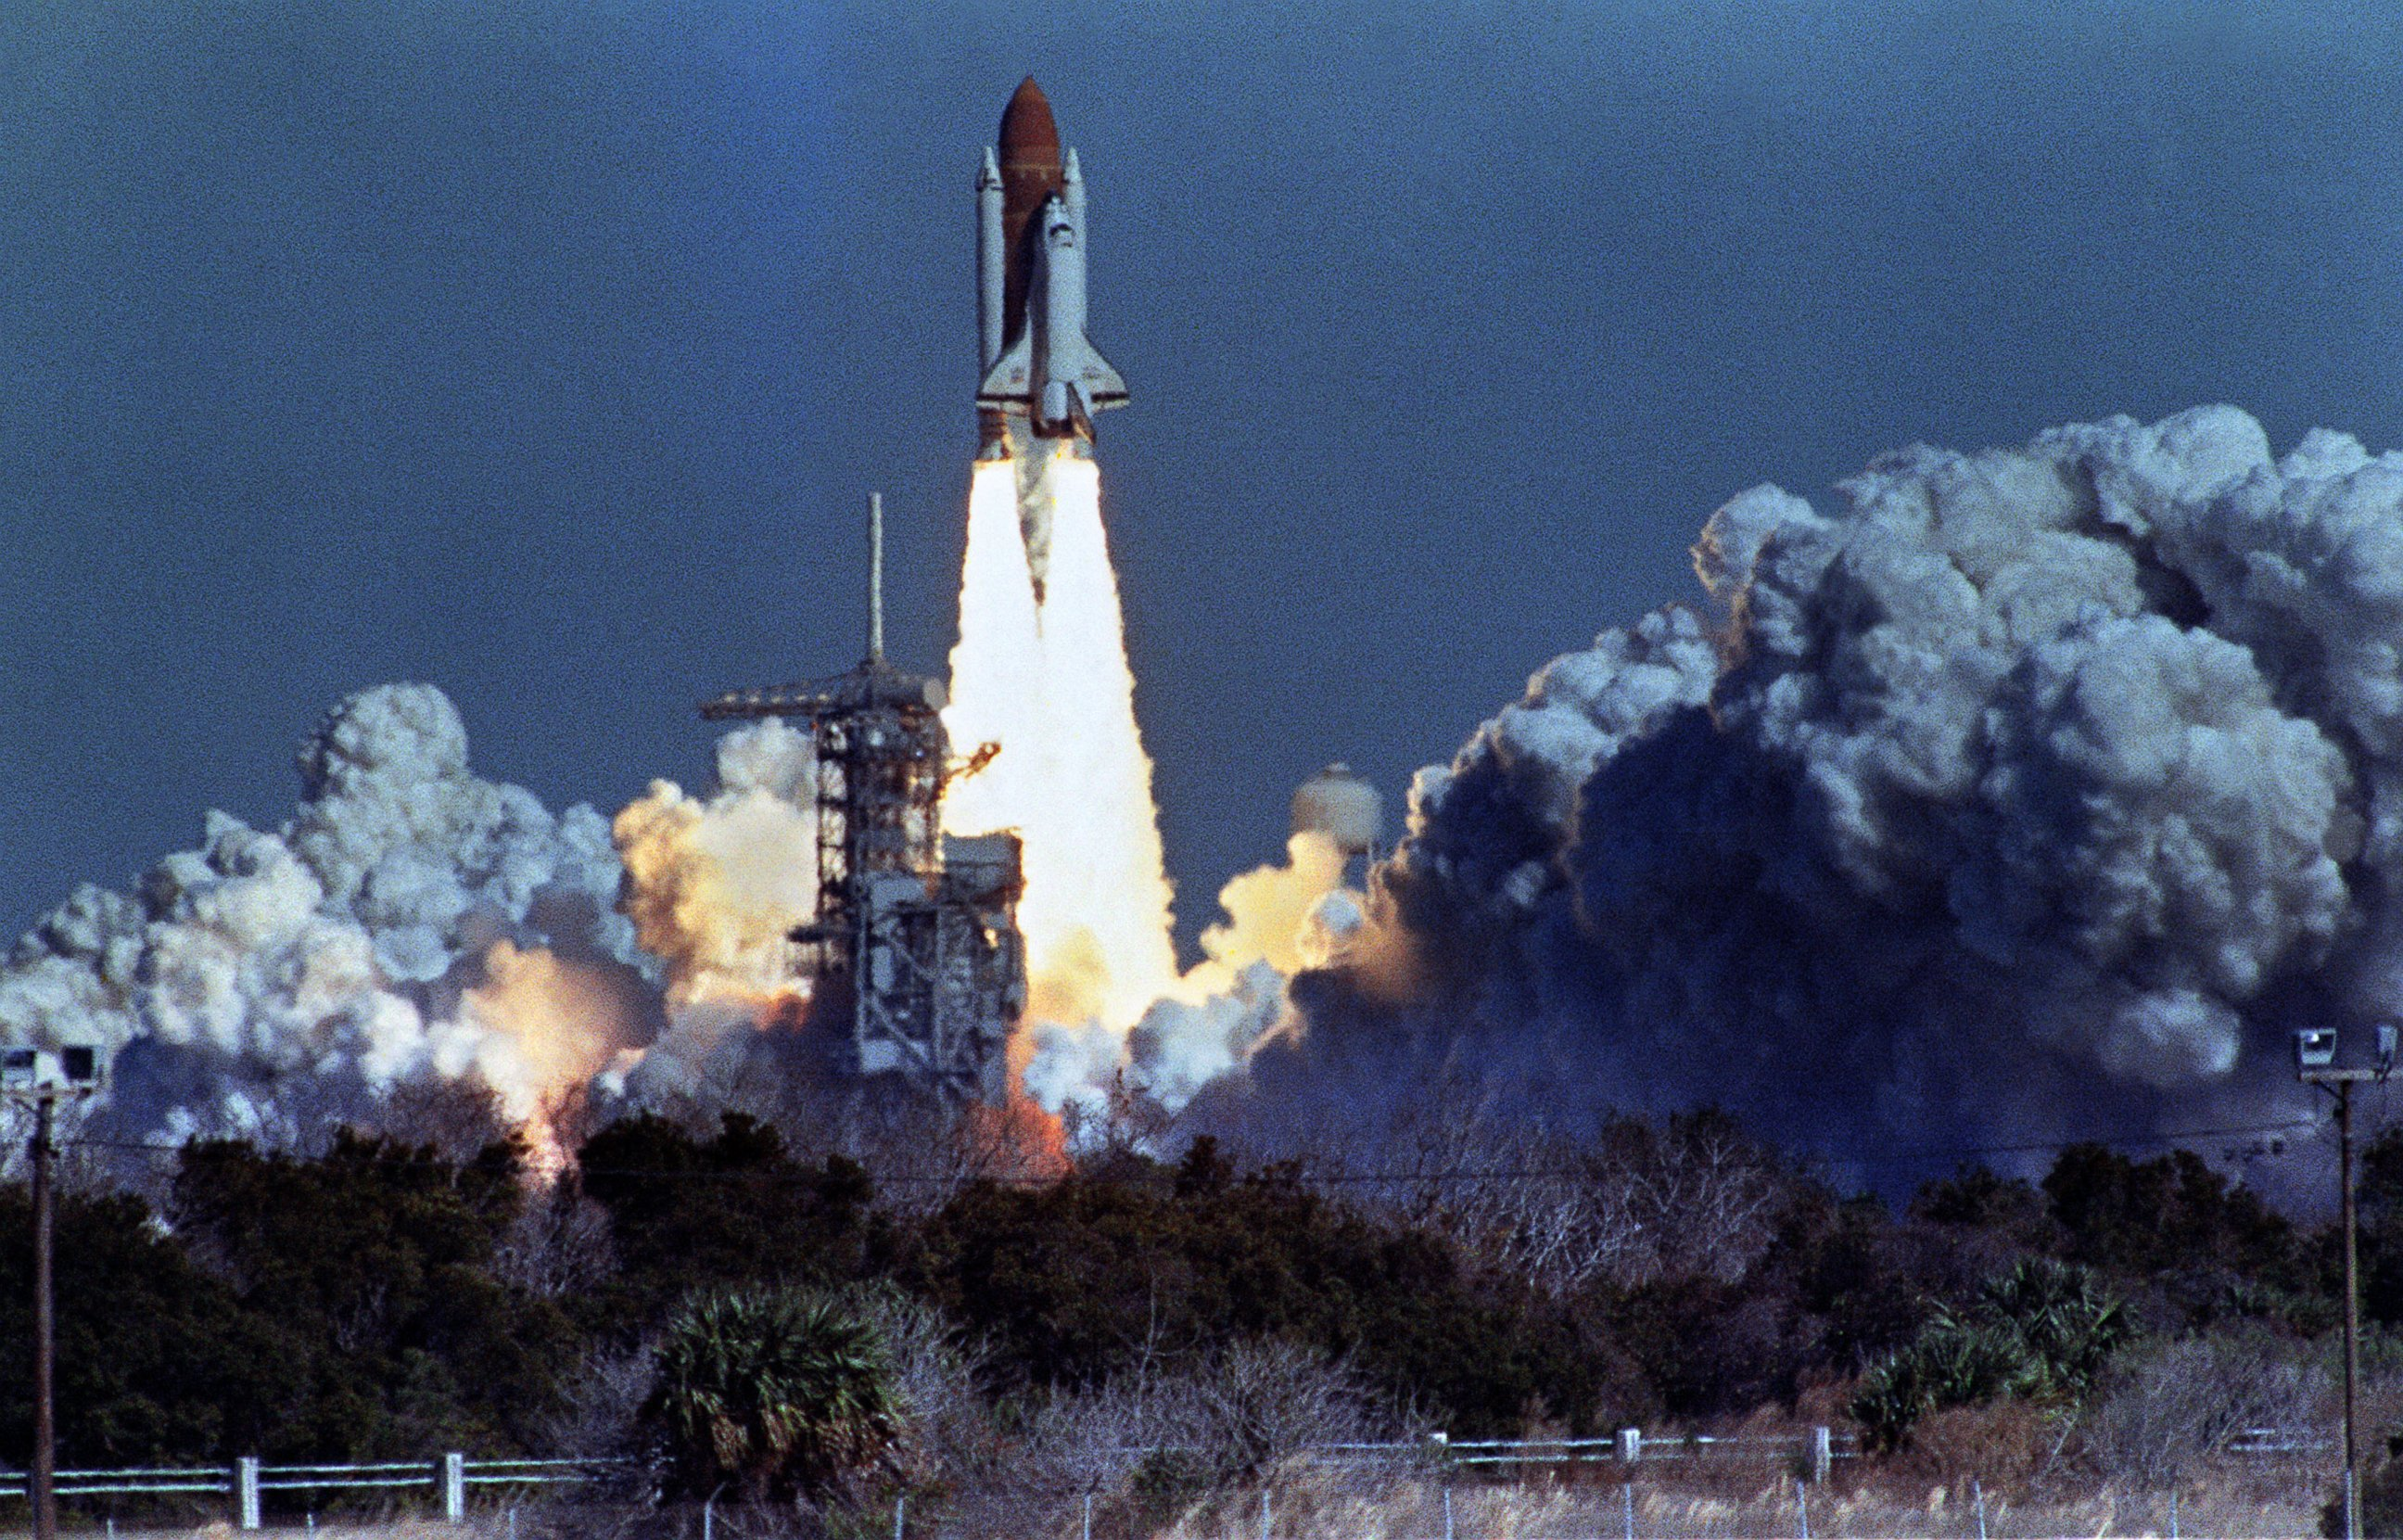 NASA lost seven of its own on the morning of Jan 28 1986 when a booster engine failed causing the Shuttle Challenger to break apart just 73 seconds after launch